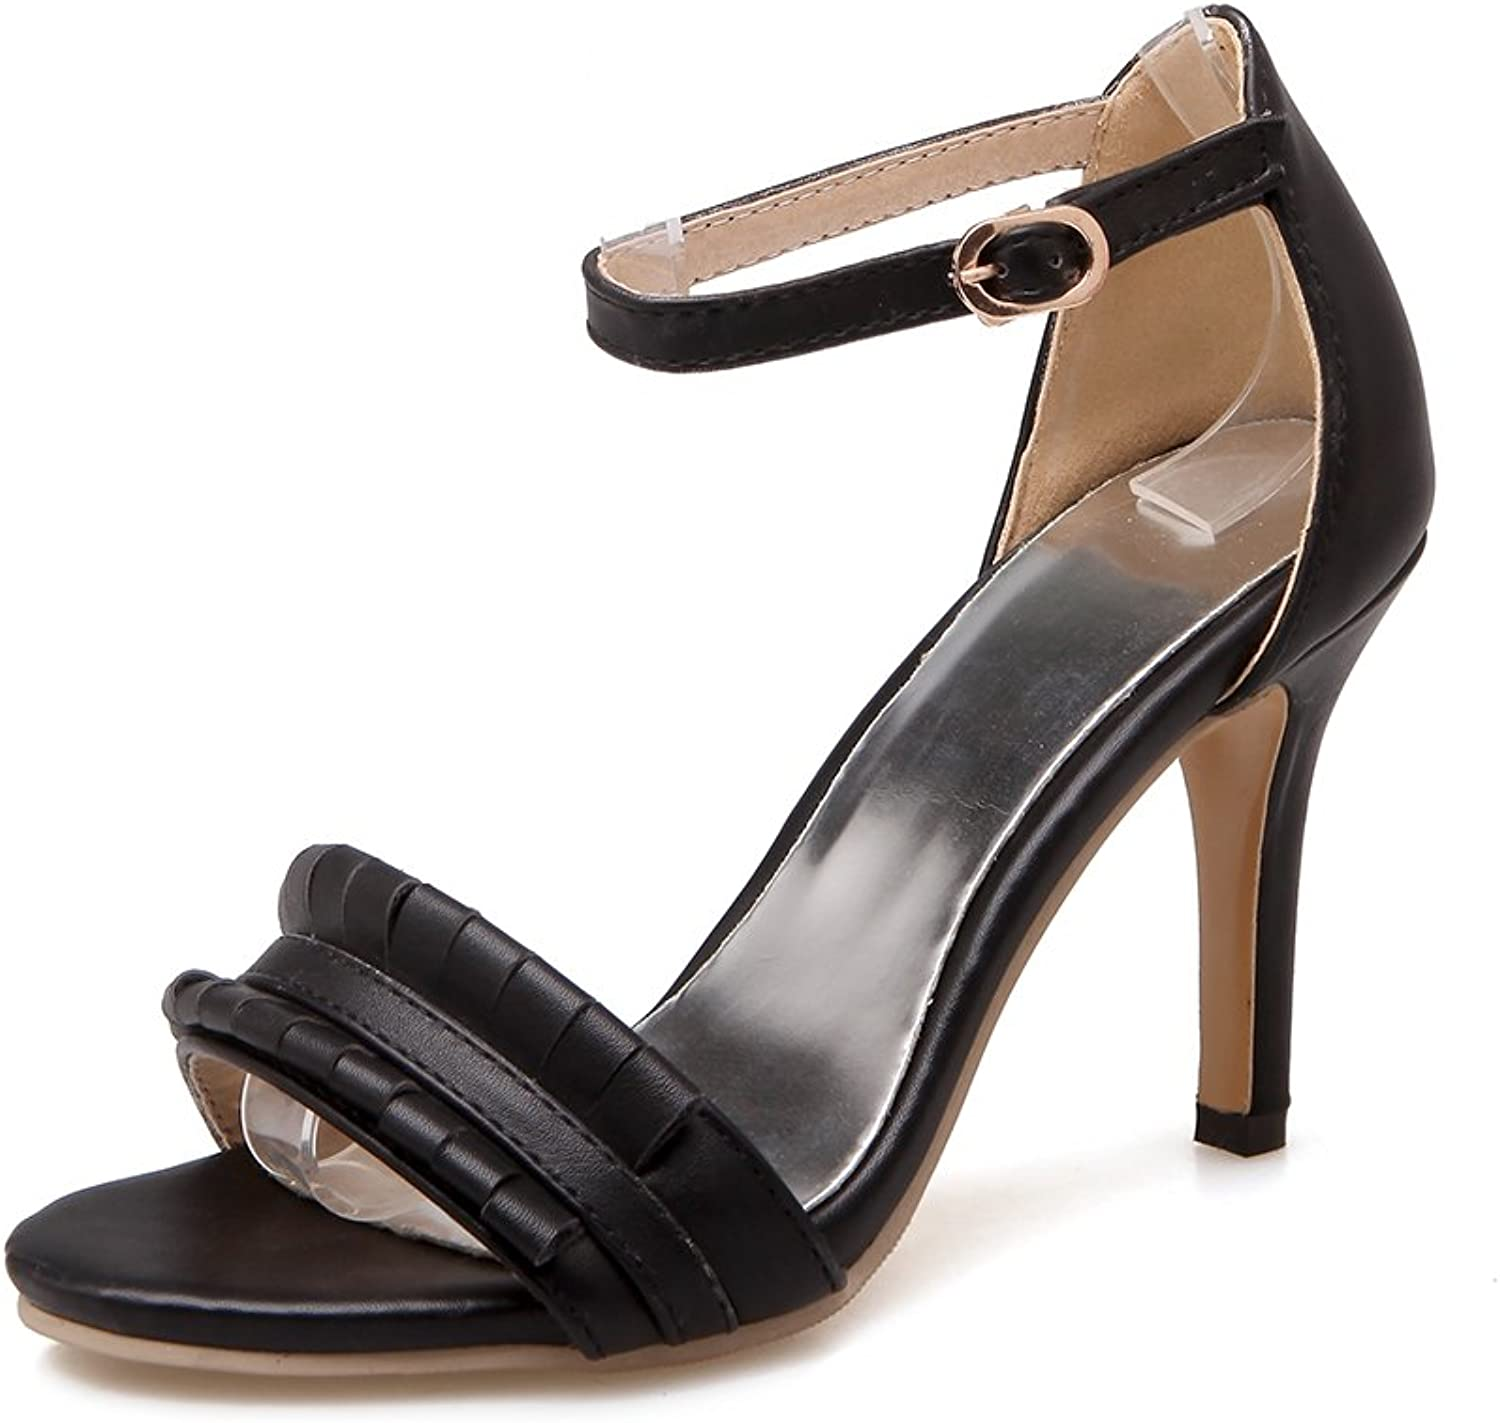 AIWEIYi Women's Retro Style Thin High Heels Buckle Strap Strappy Sandals Black